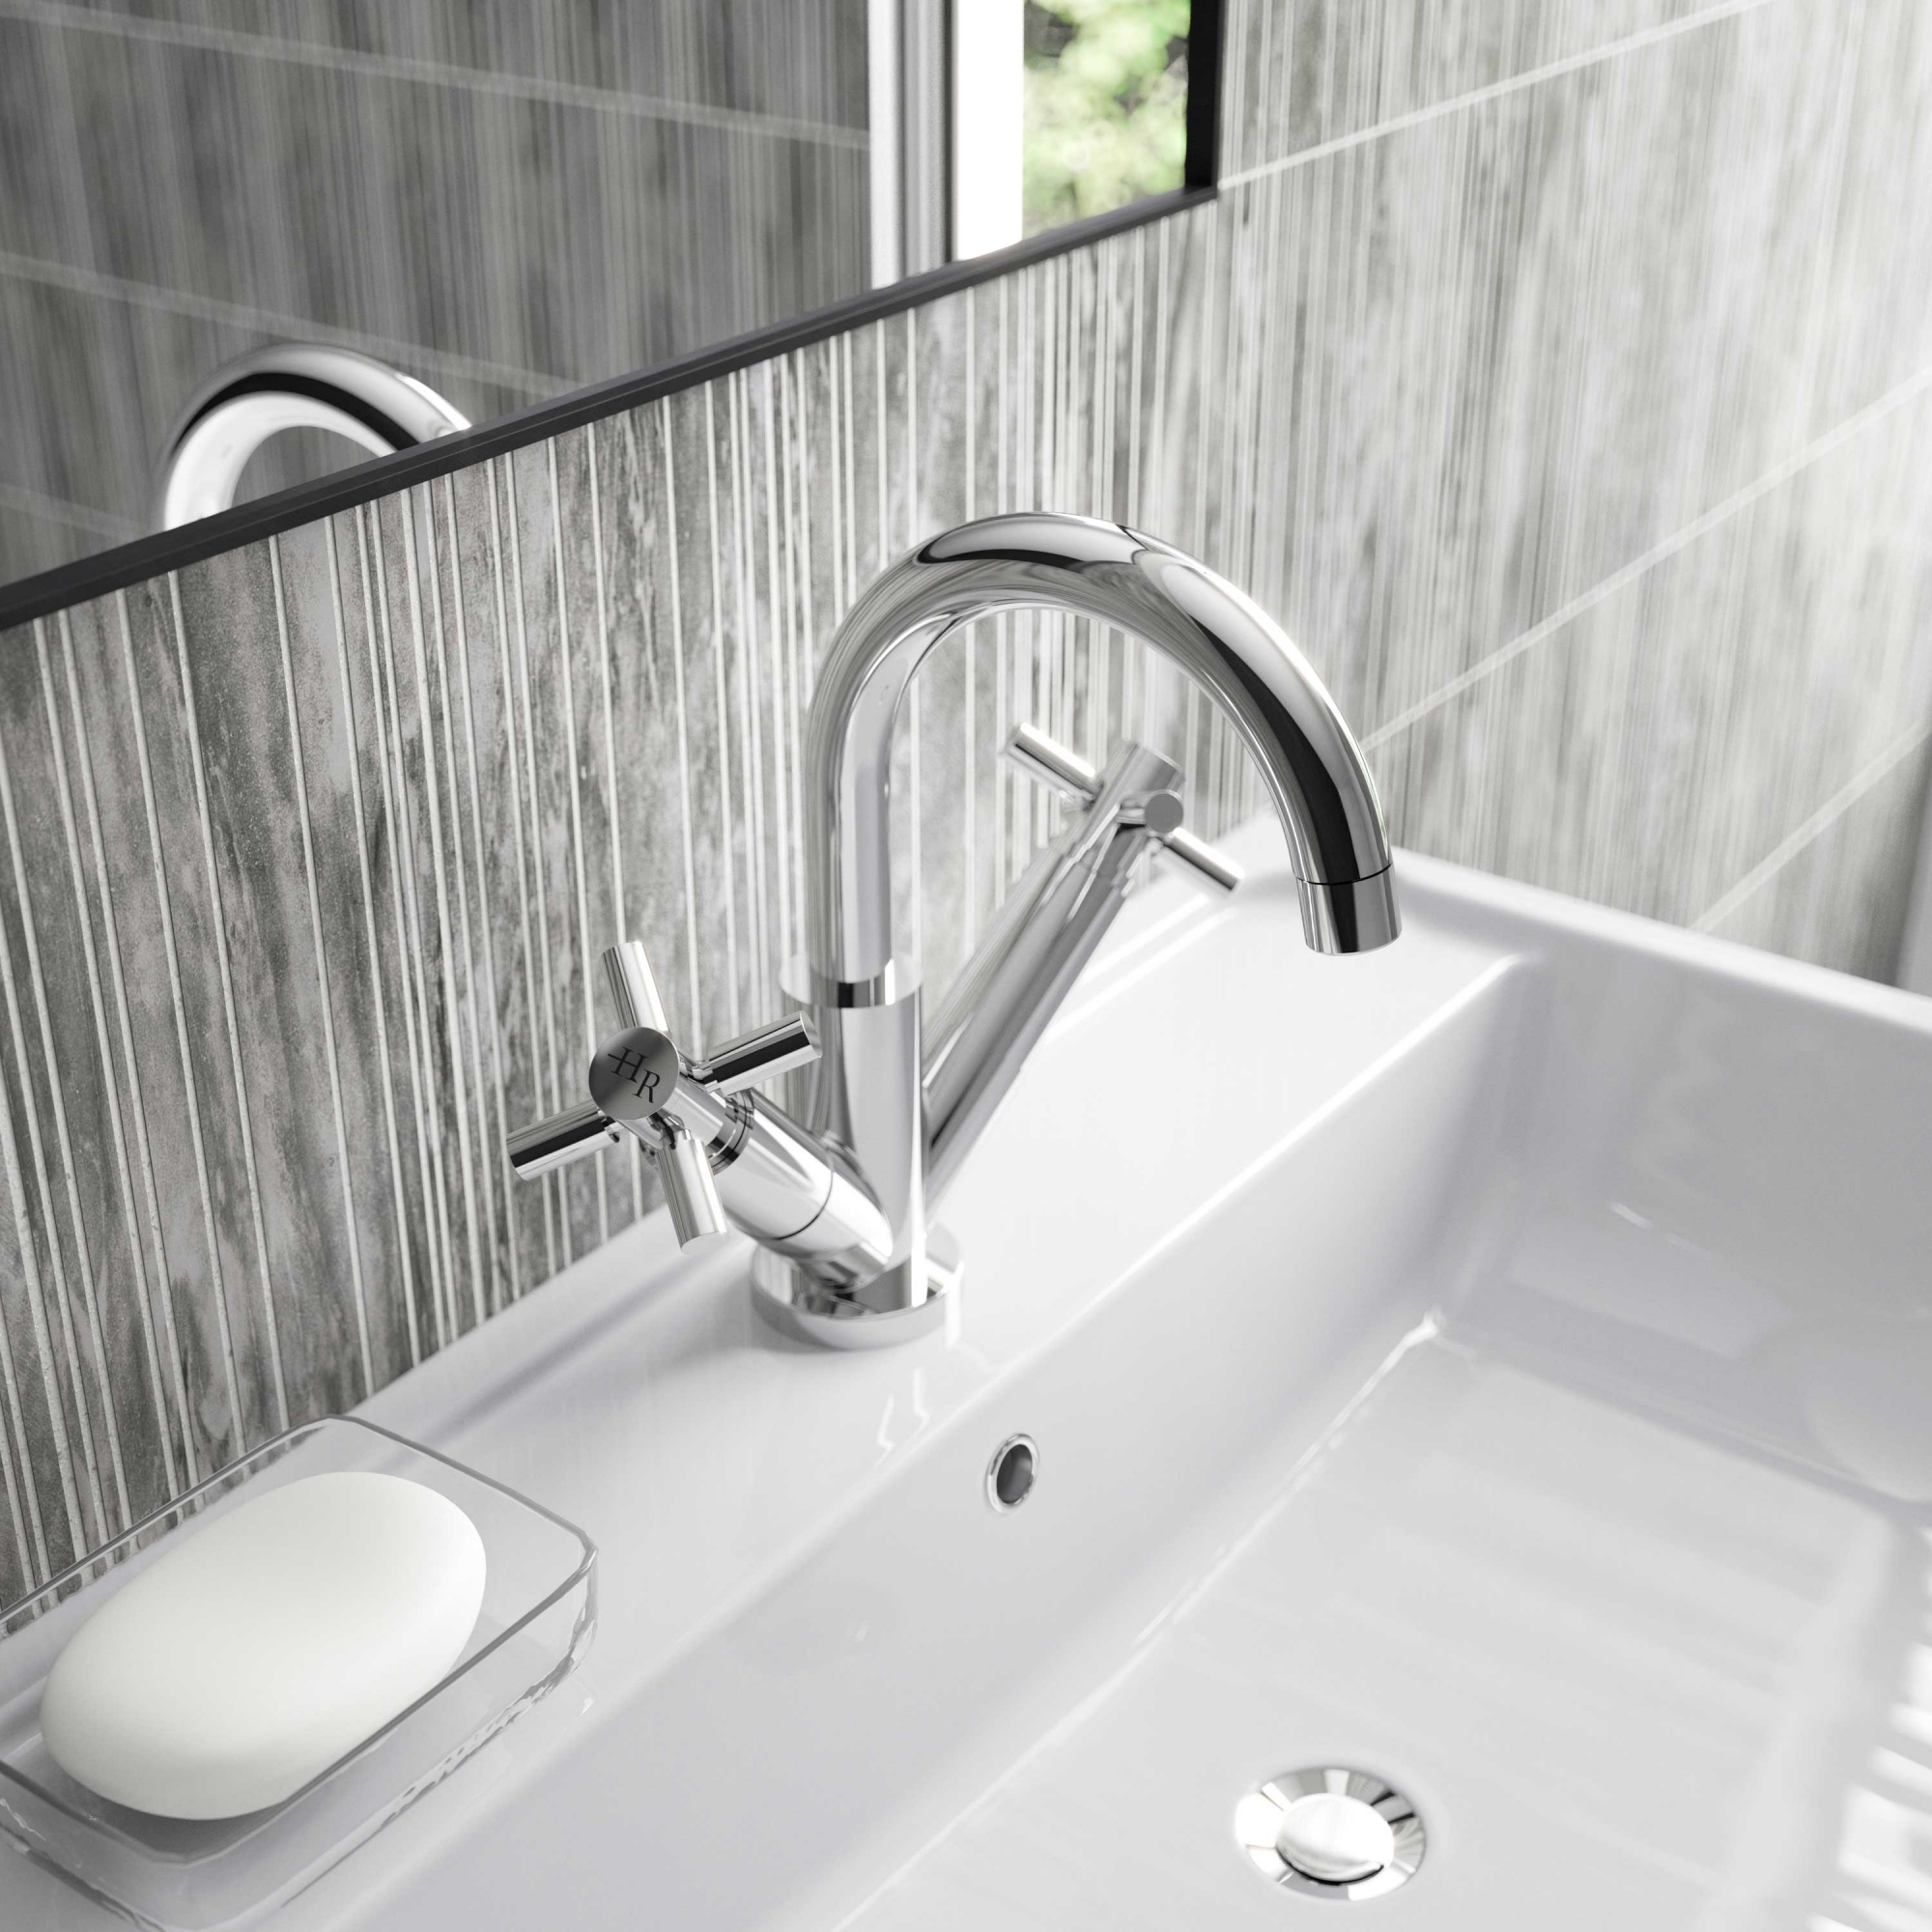 Hudson Reed Tec Crosshead Cloakroom Mono Basin Mixer Tap Dual Handle Push Button Waste - Chrome